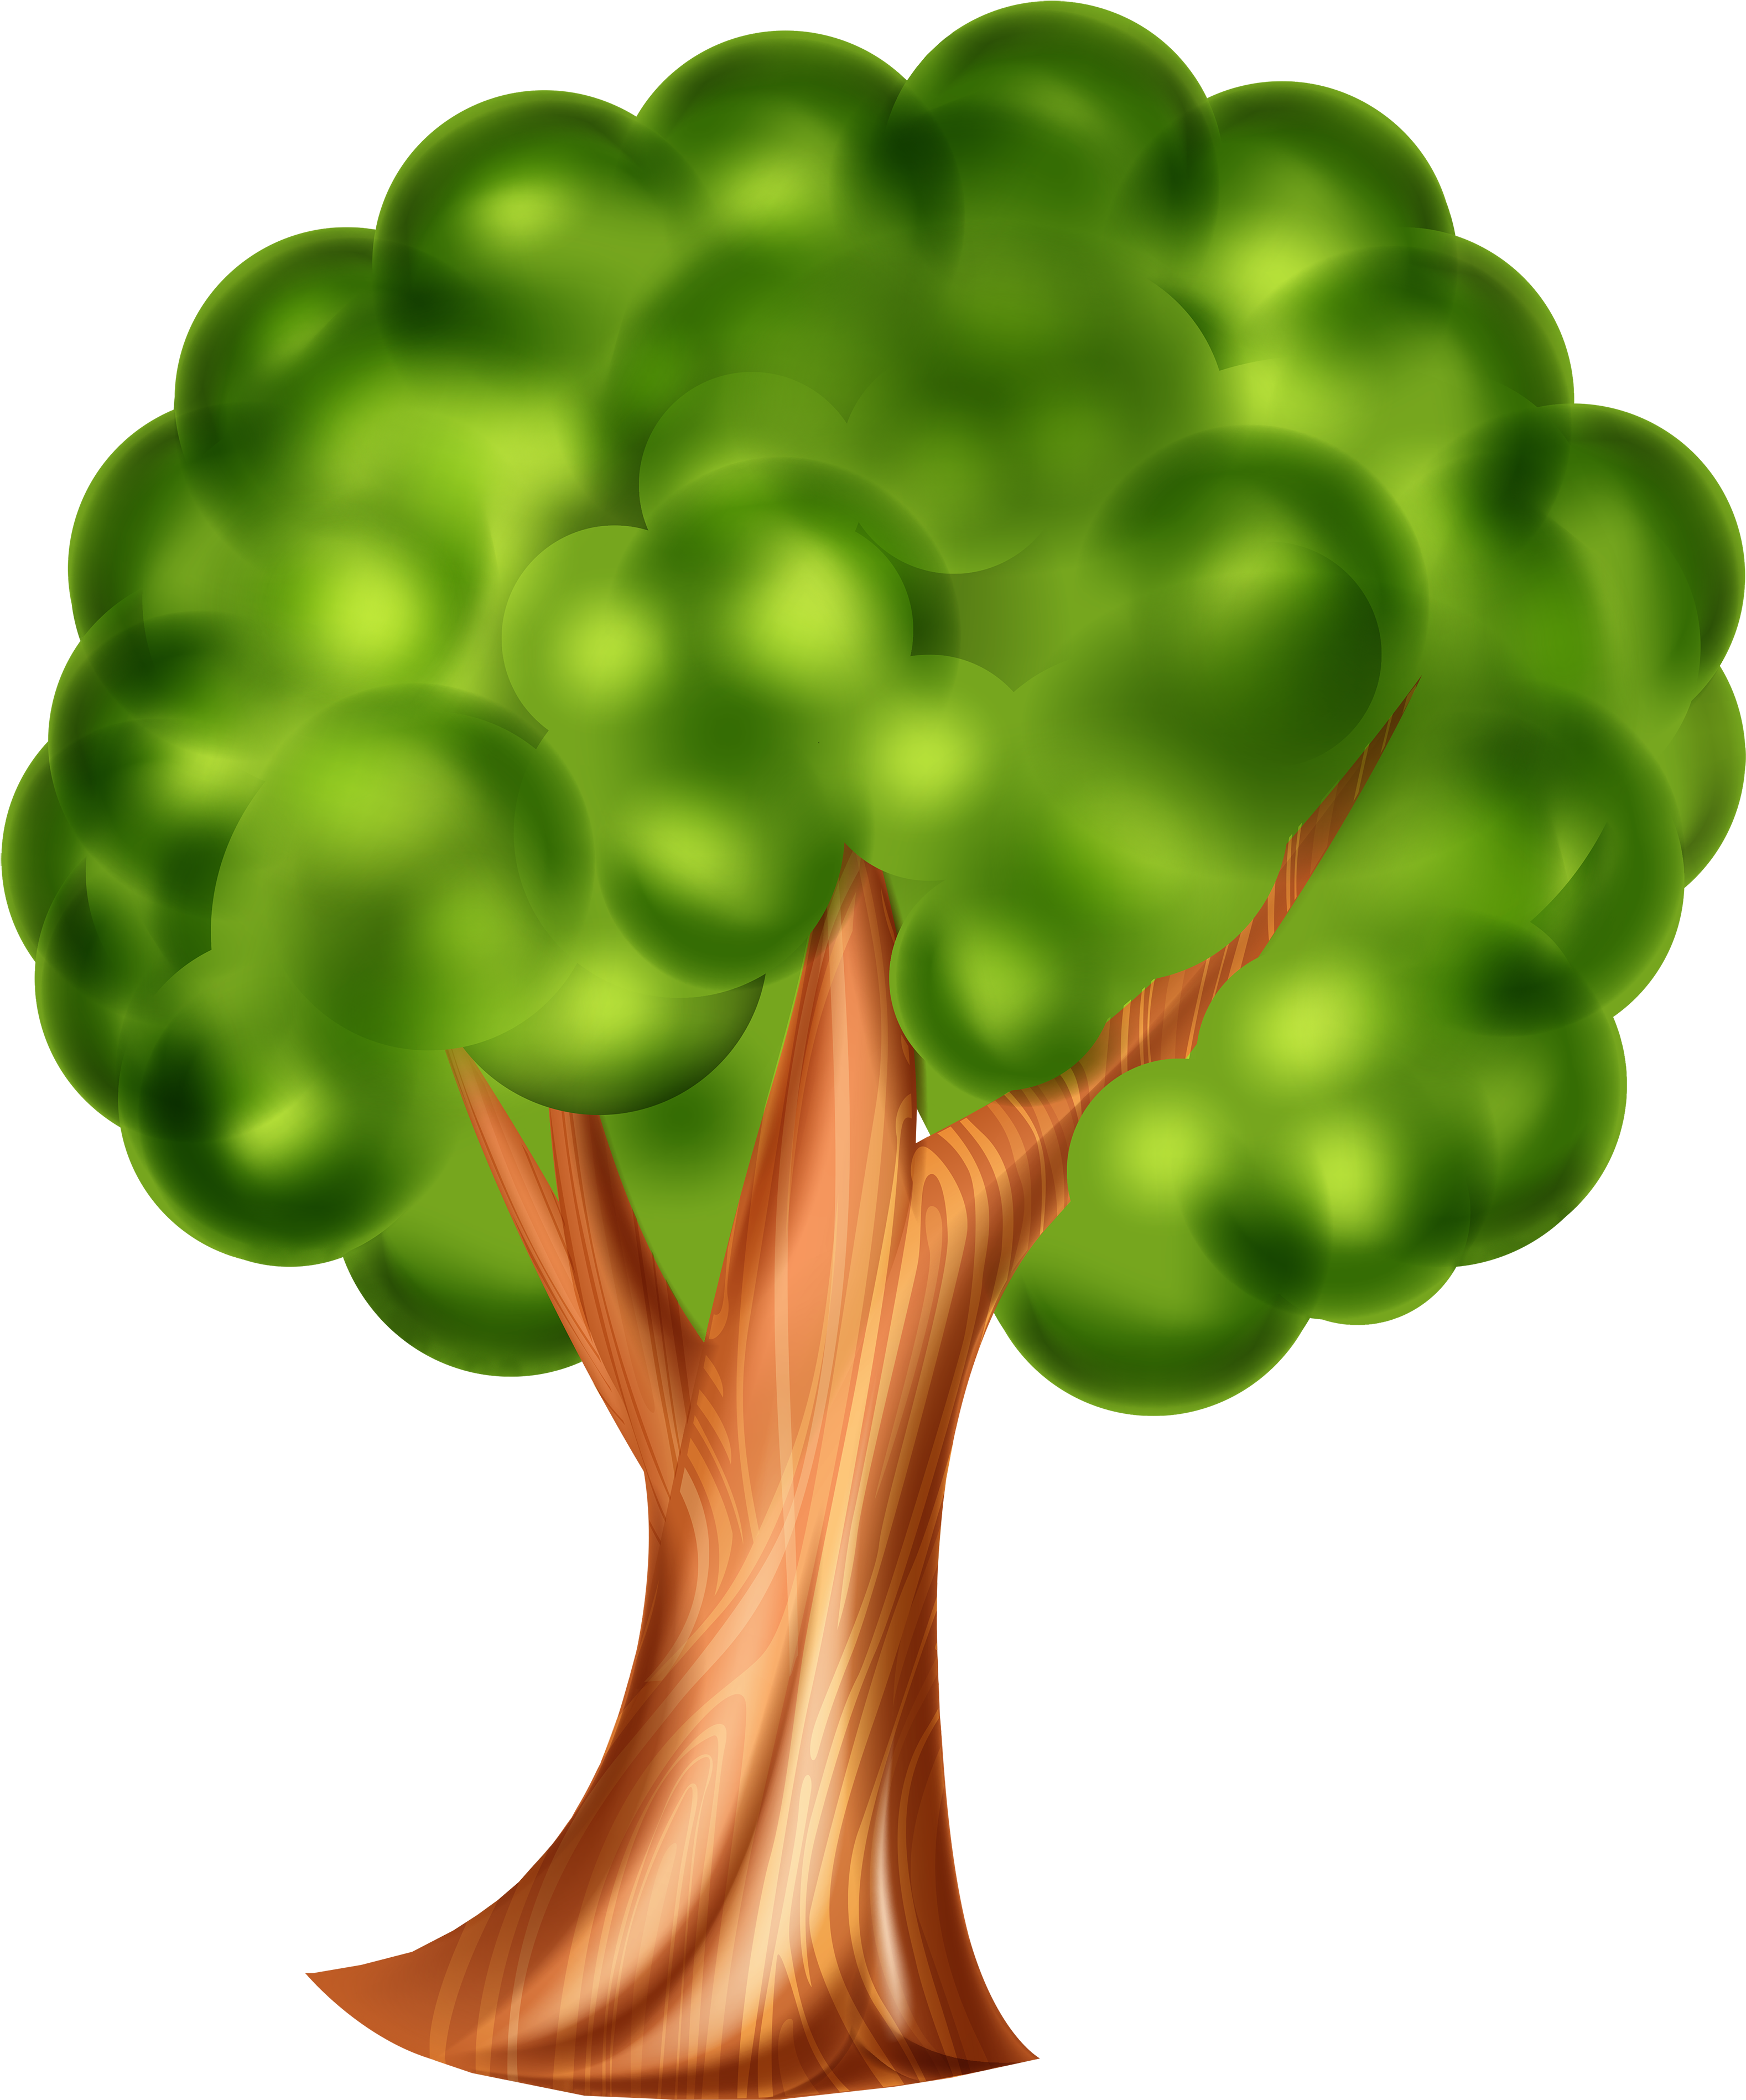 Cartoon Tree Transparent Background Png : Download free tree png images.